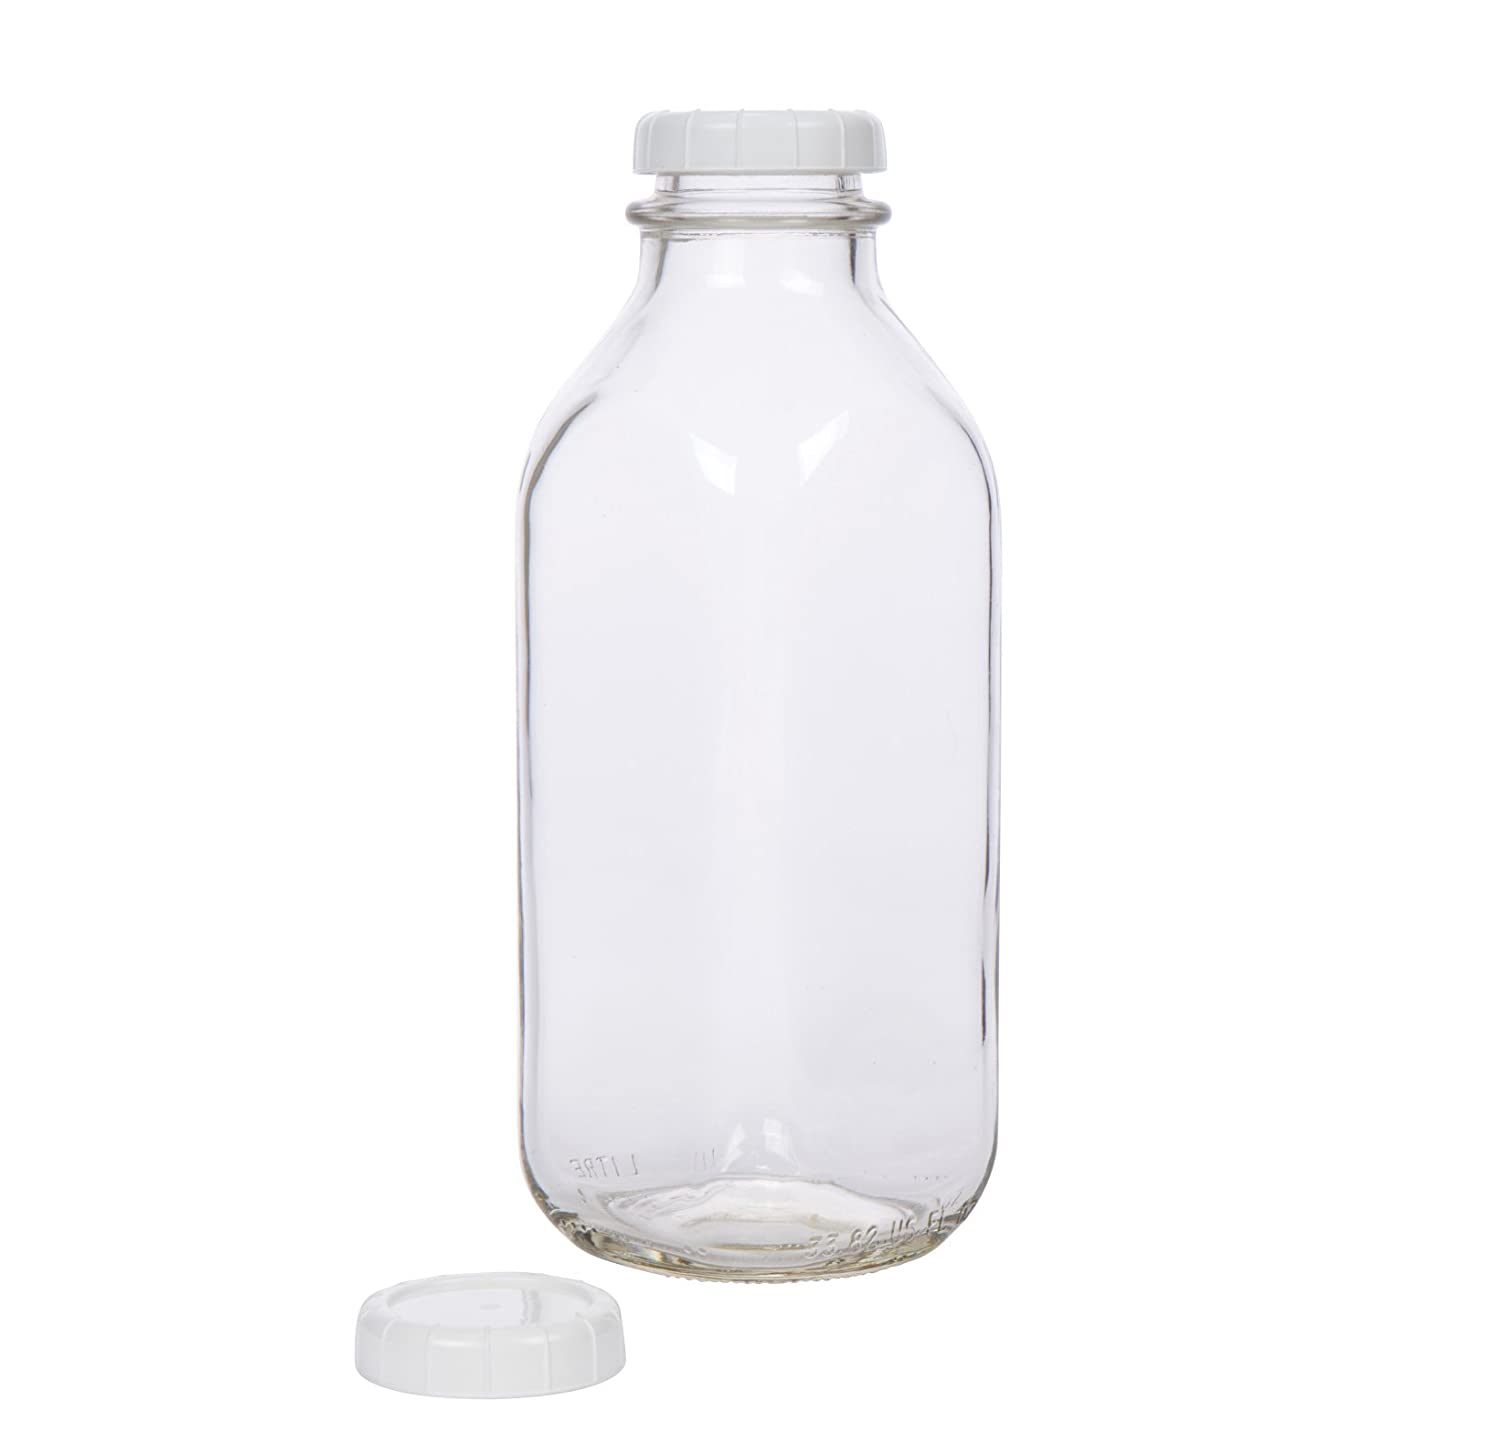 Glass Milk Bottle - USA Made 33.8 oz Jug with Extra Lid Radiant Day Co. MB-33-1